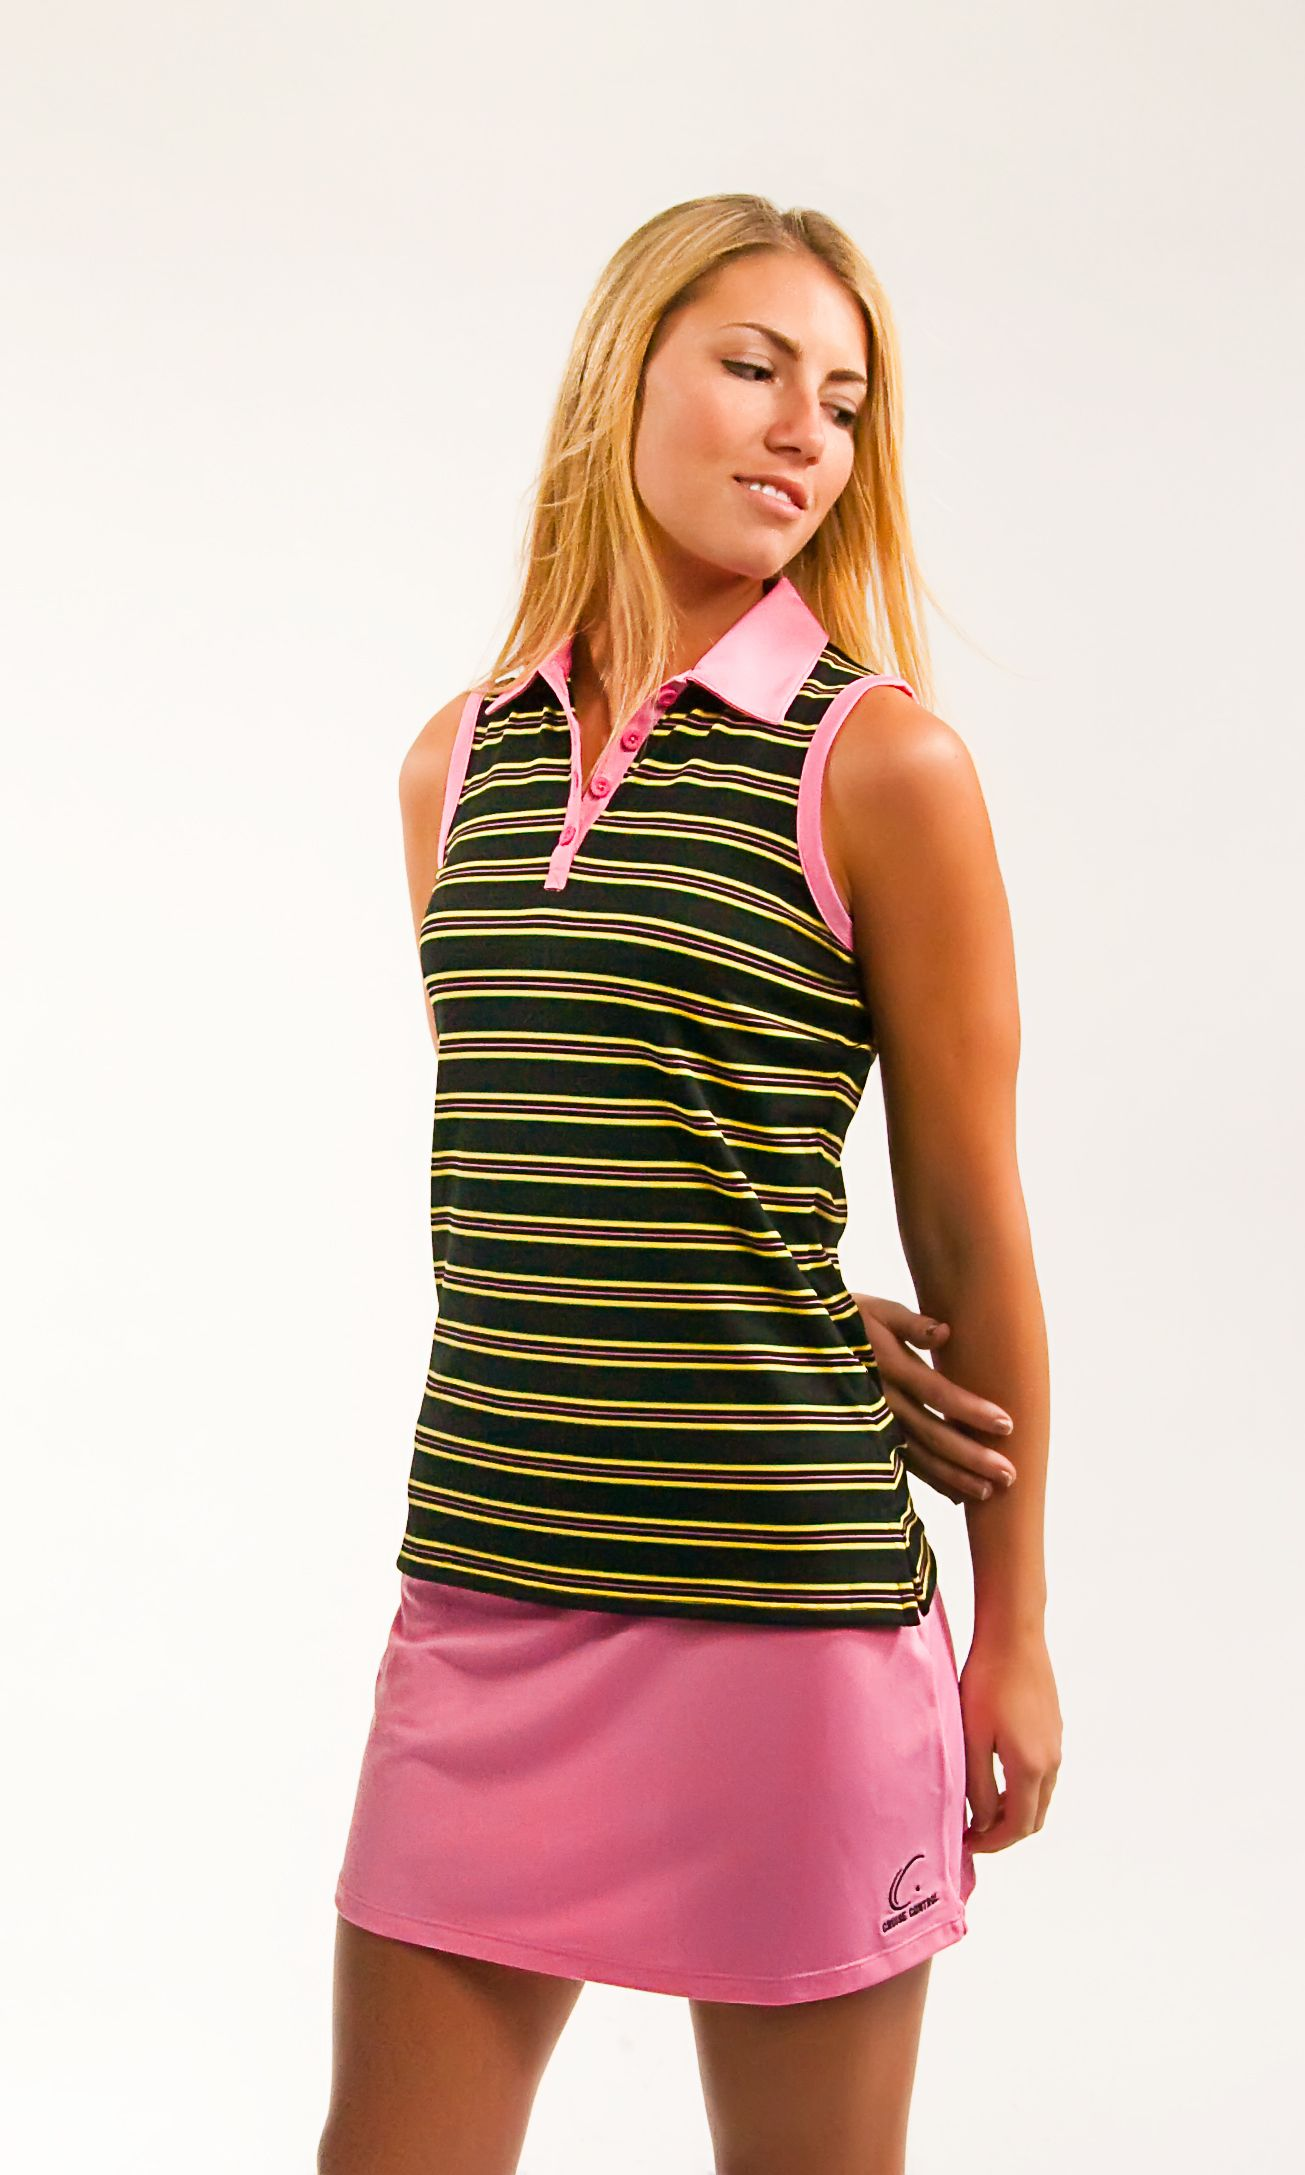 So cute! Love the Pink trim, what a perfect pair! Match Point Melon Sleeveless Polo and Skort Matching Set!